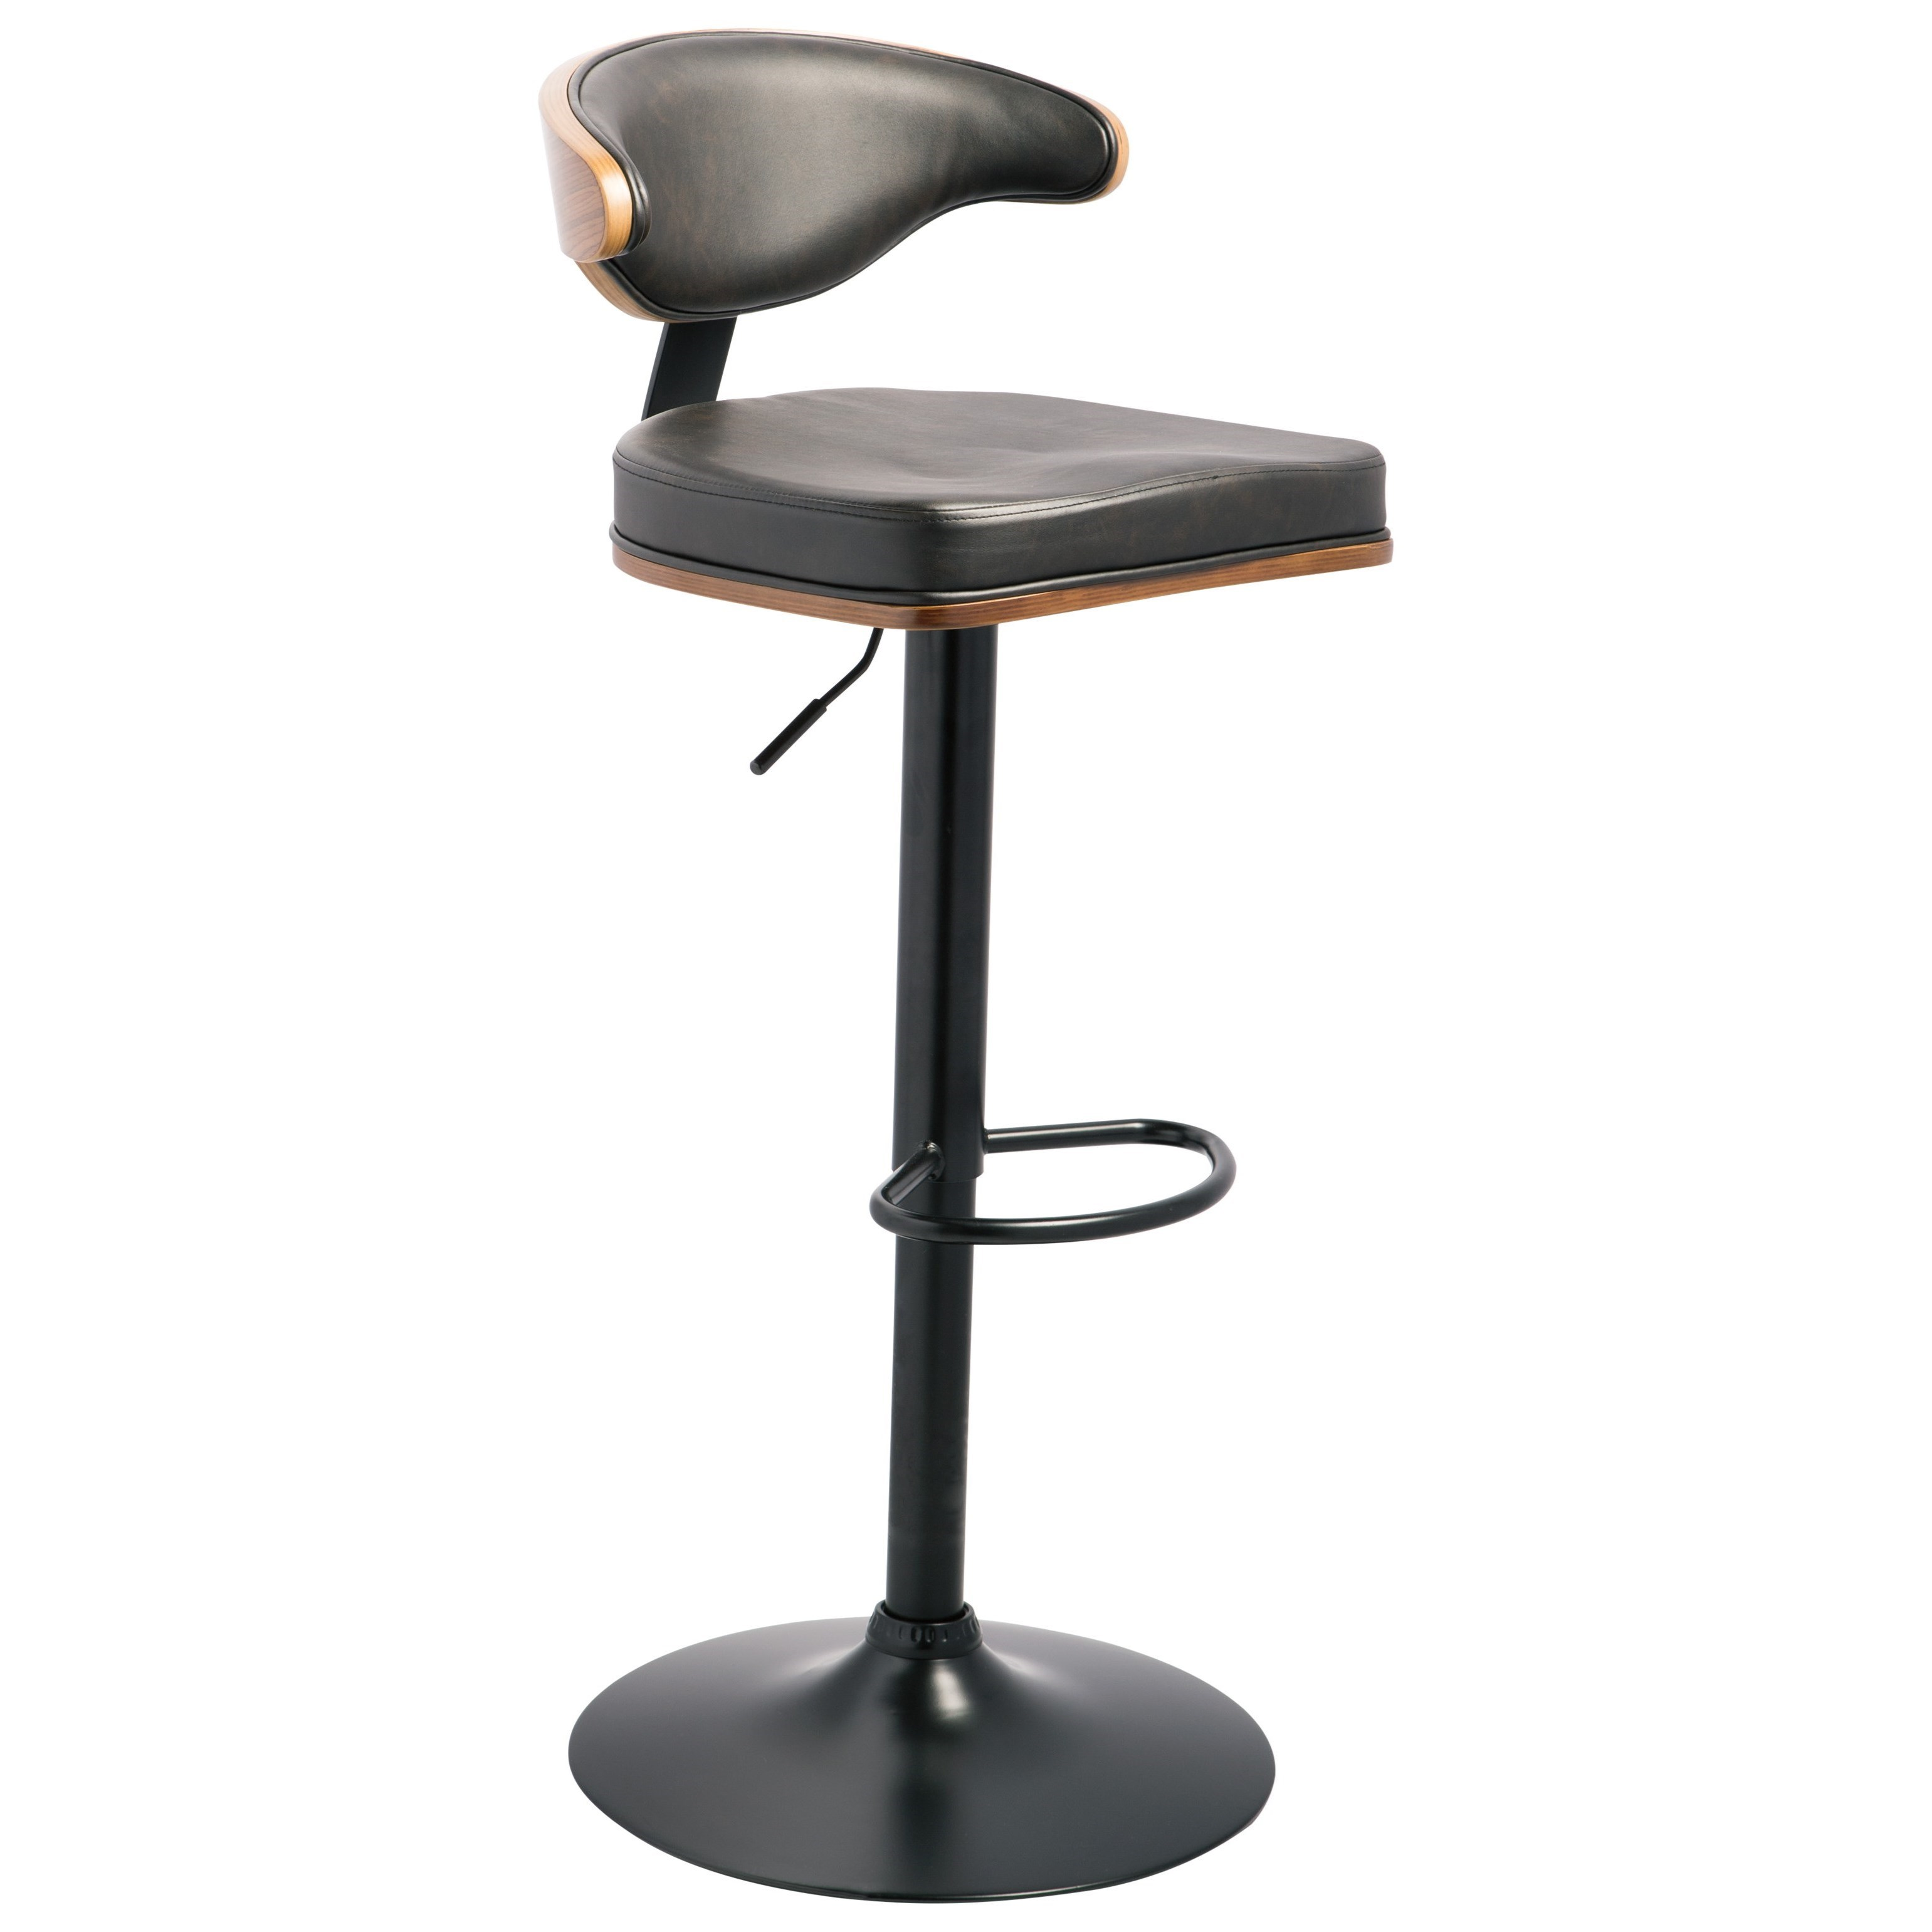 high bar stool chairs morris cape town signature design by ashley adjustable height barstools